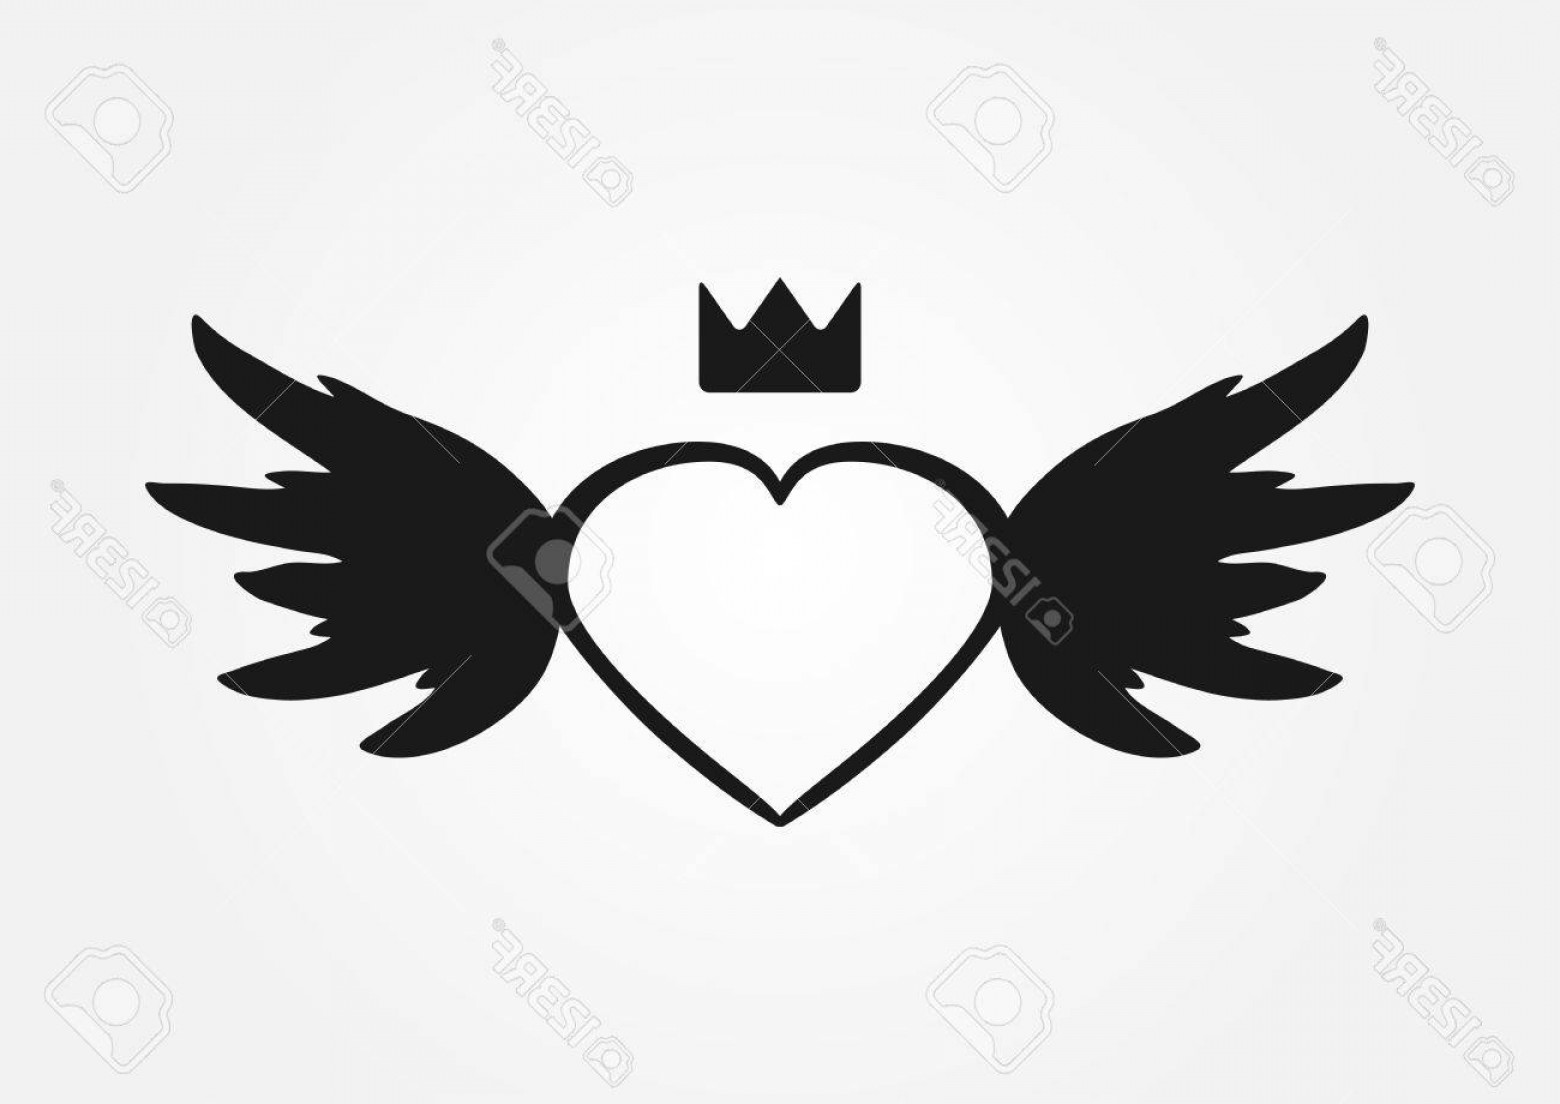 1560x1104 Photostock Vector Sketch Heart Wings Crown Abstract Silhouette